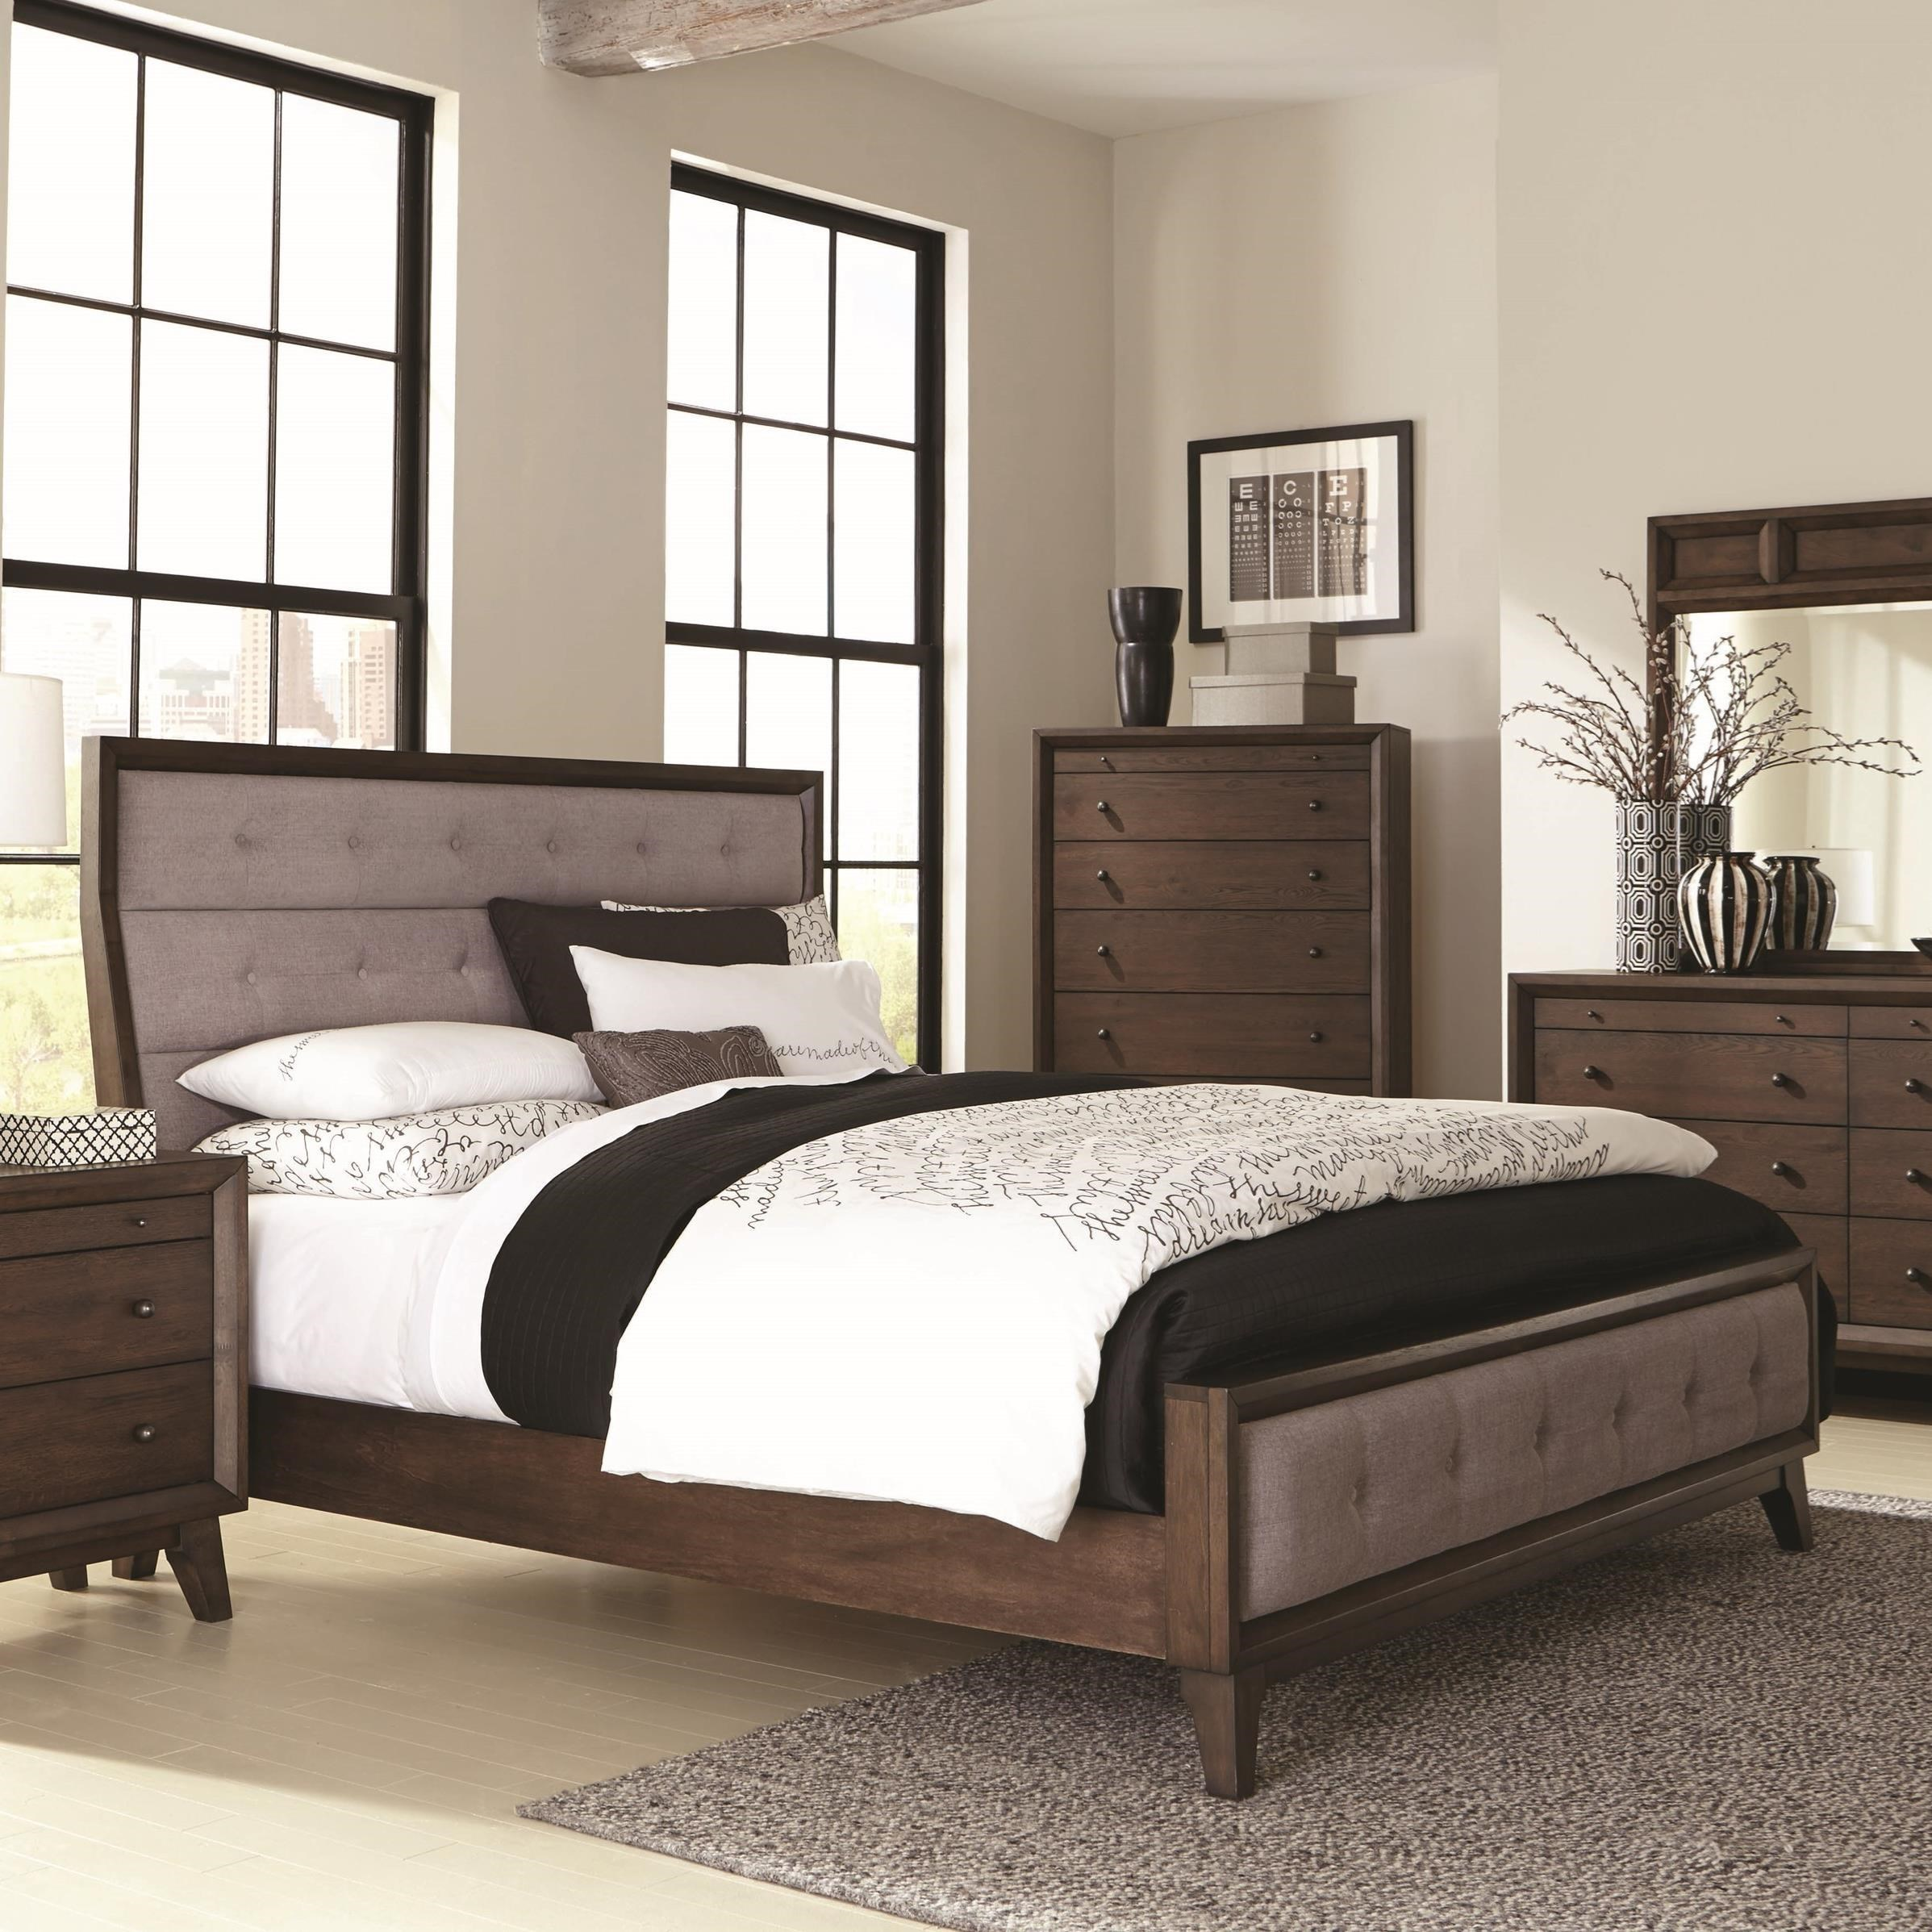 Coaster Bingham King Upholstered Bed Del Sol Furniture